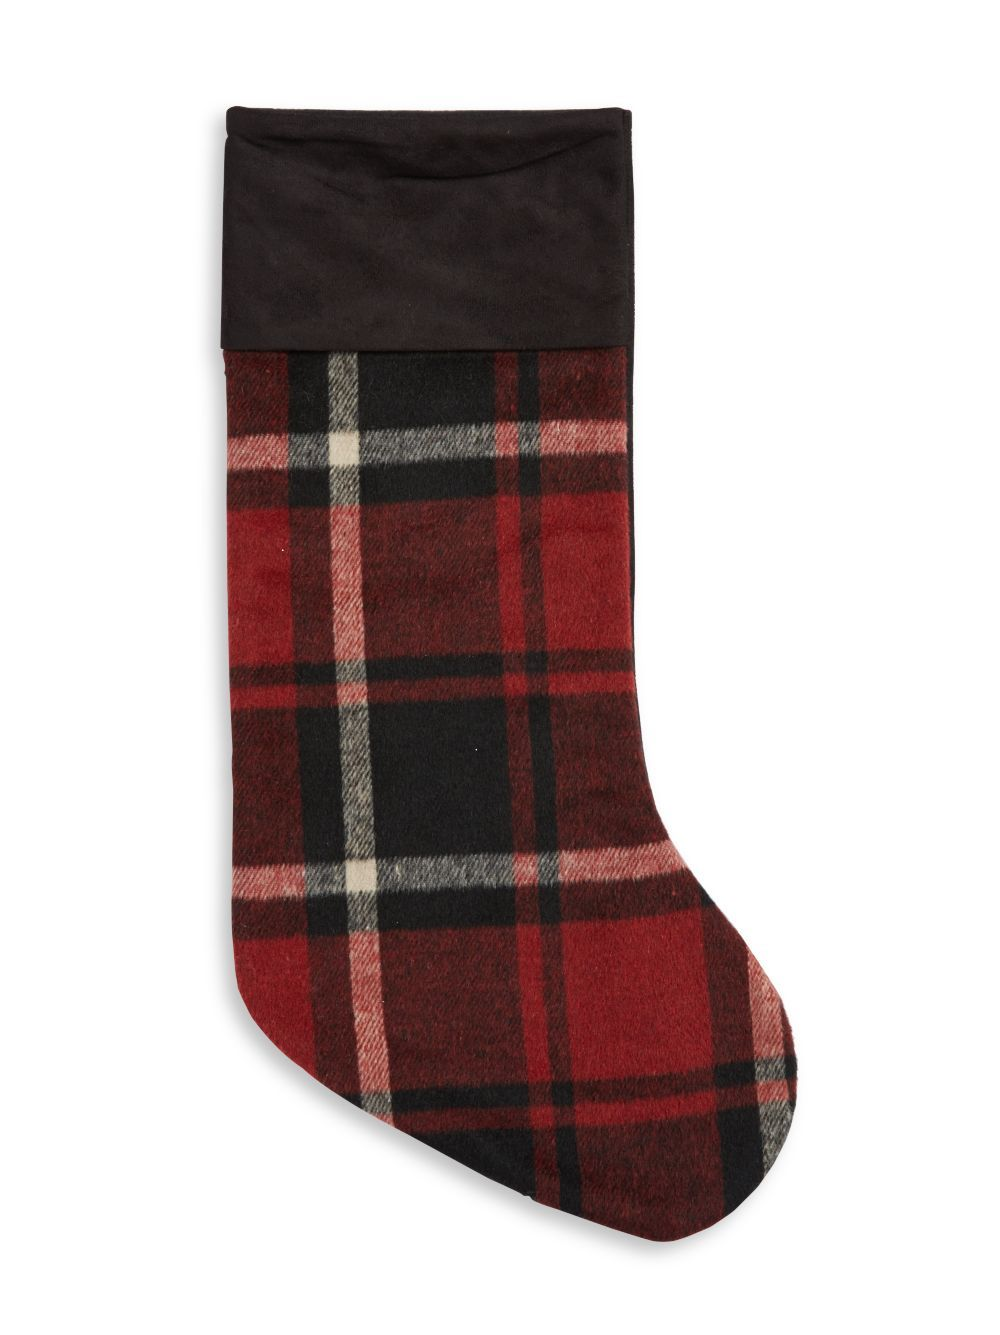 best christmas stockings knit and personalized christmas stocking ideas - Plaid Christmas Stockings